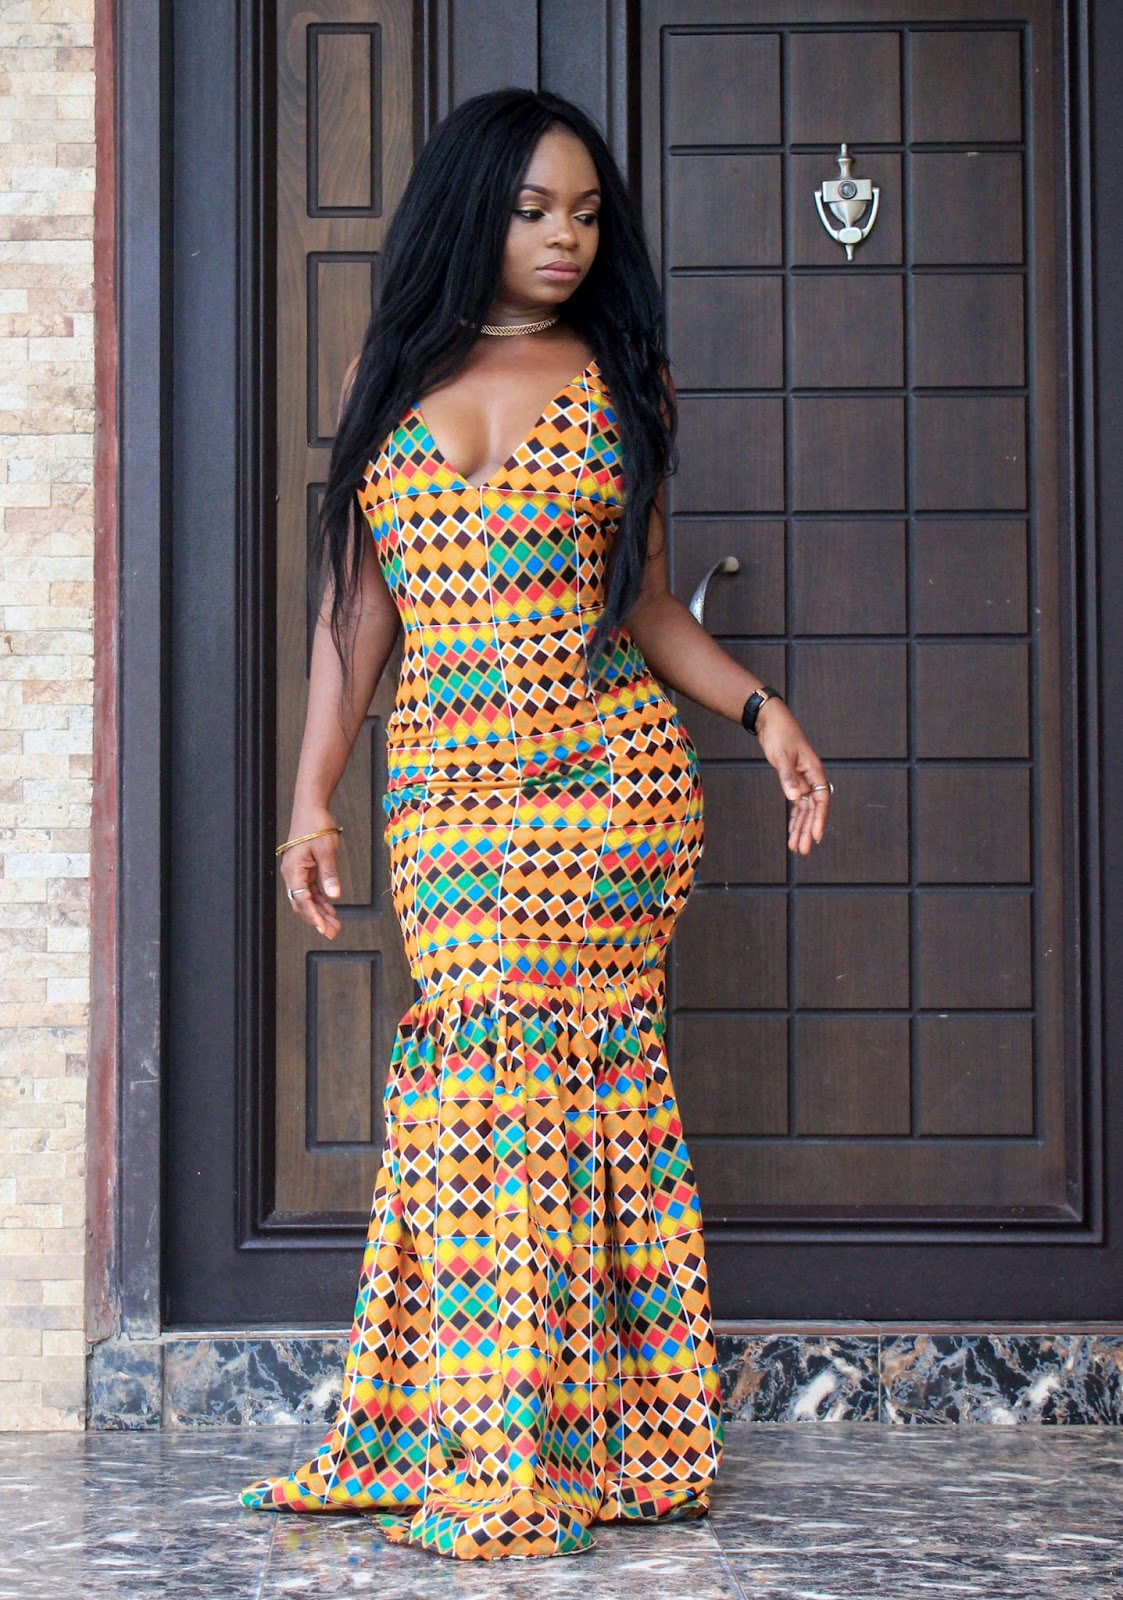 ANKARA CRUSH- African Prints Mermaid style dress